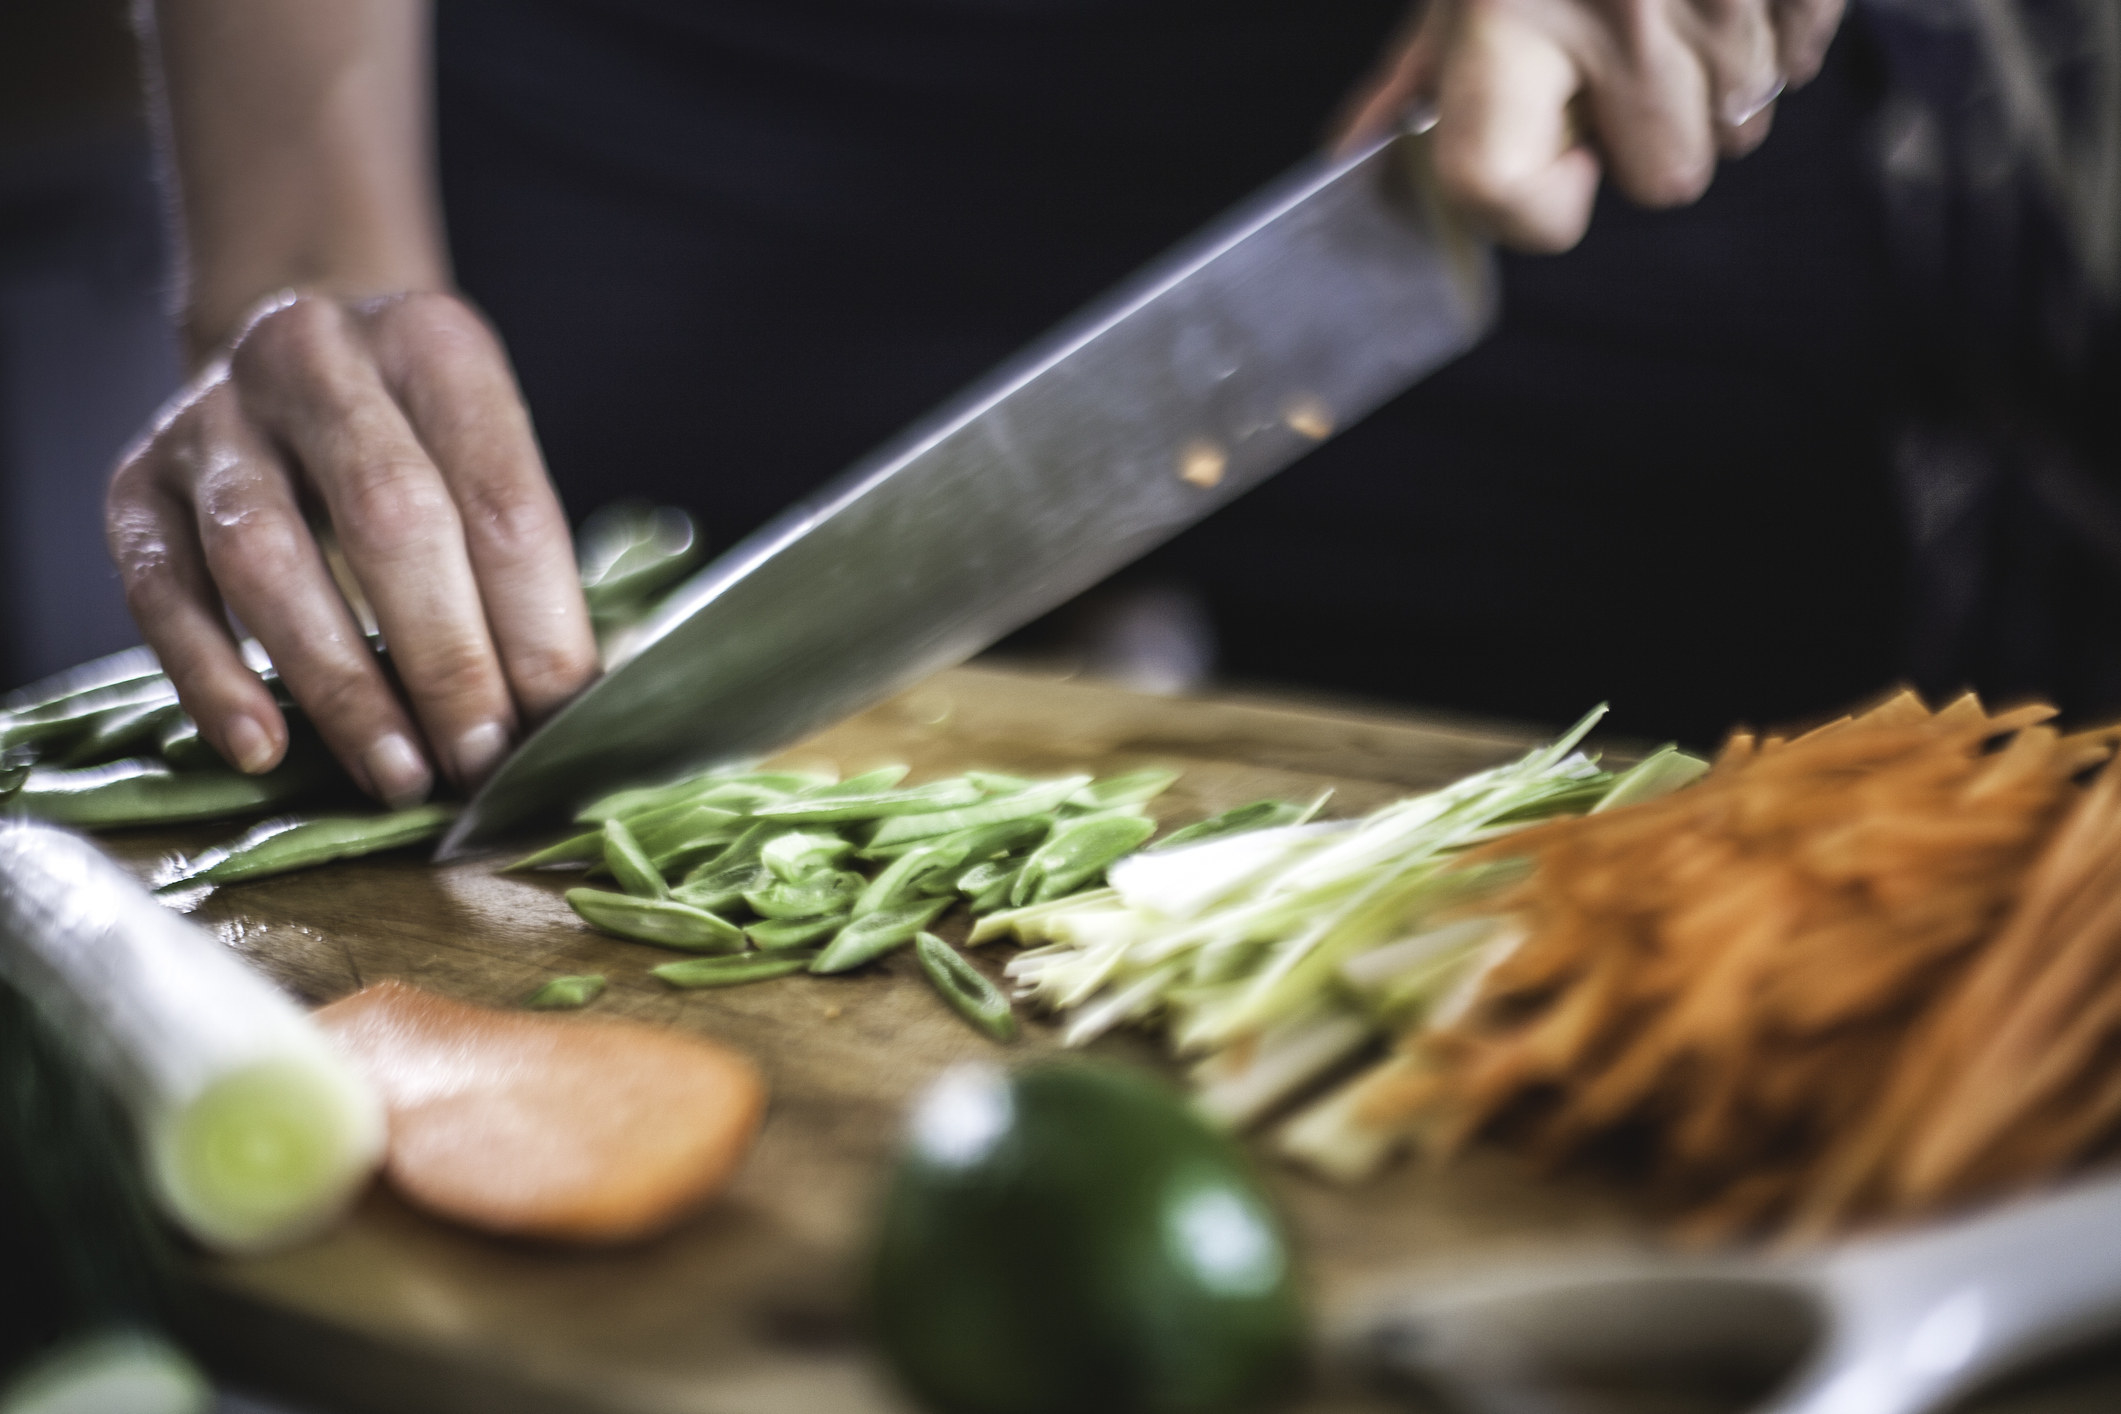 Julienning vegetables with a chef's knife.